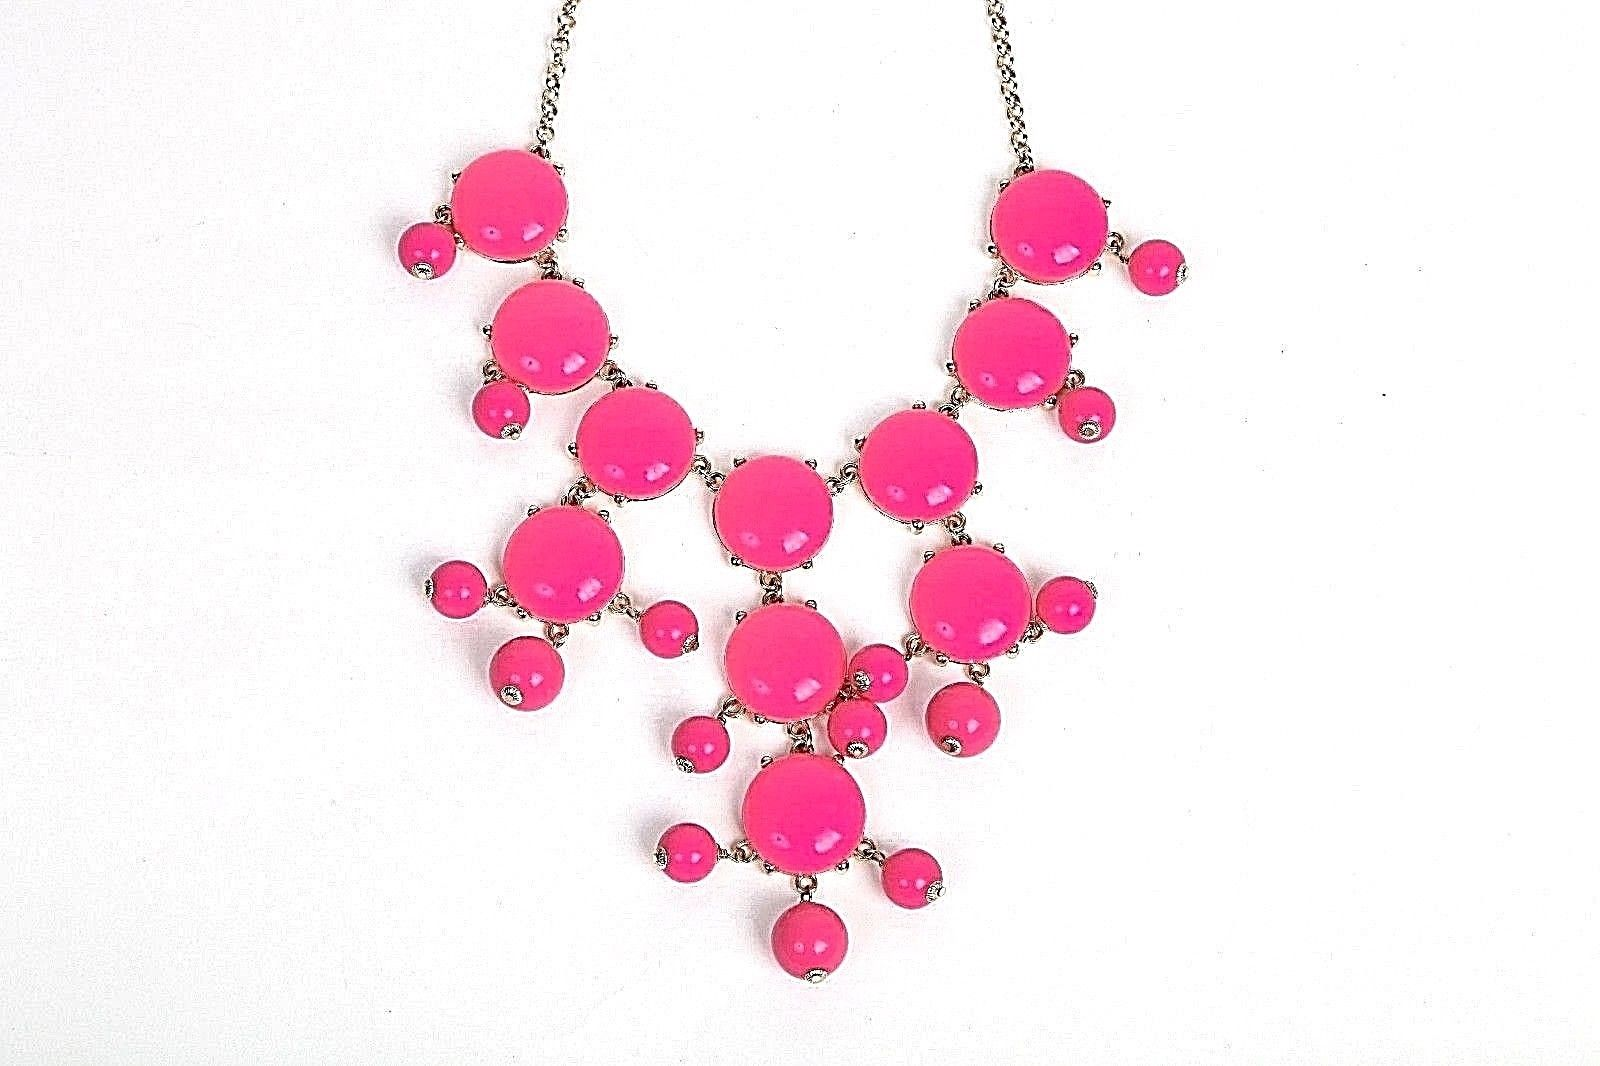 J. CREW Necklace Pink Fuchsia Gold Plated Chain Bubble Dangling Bib